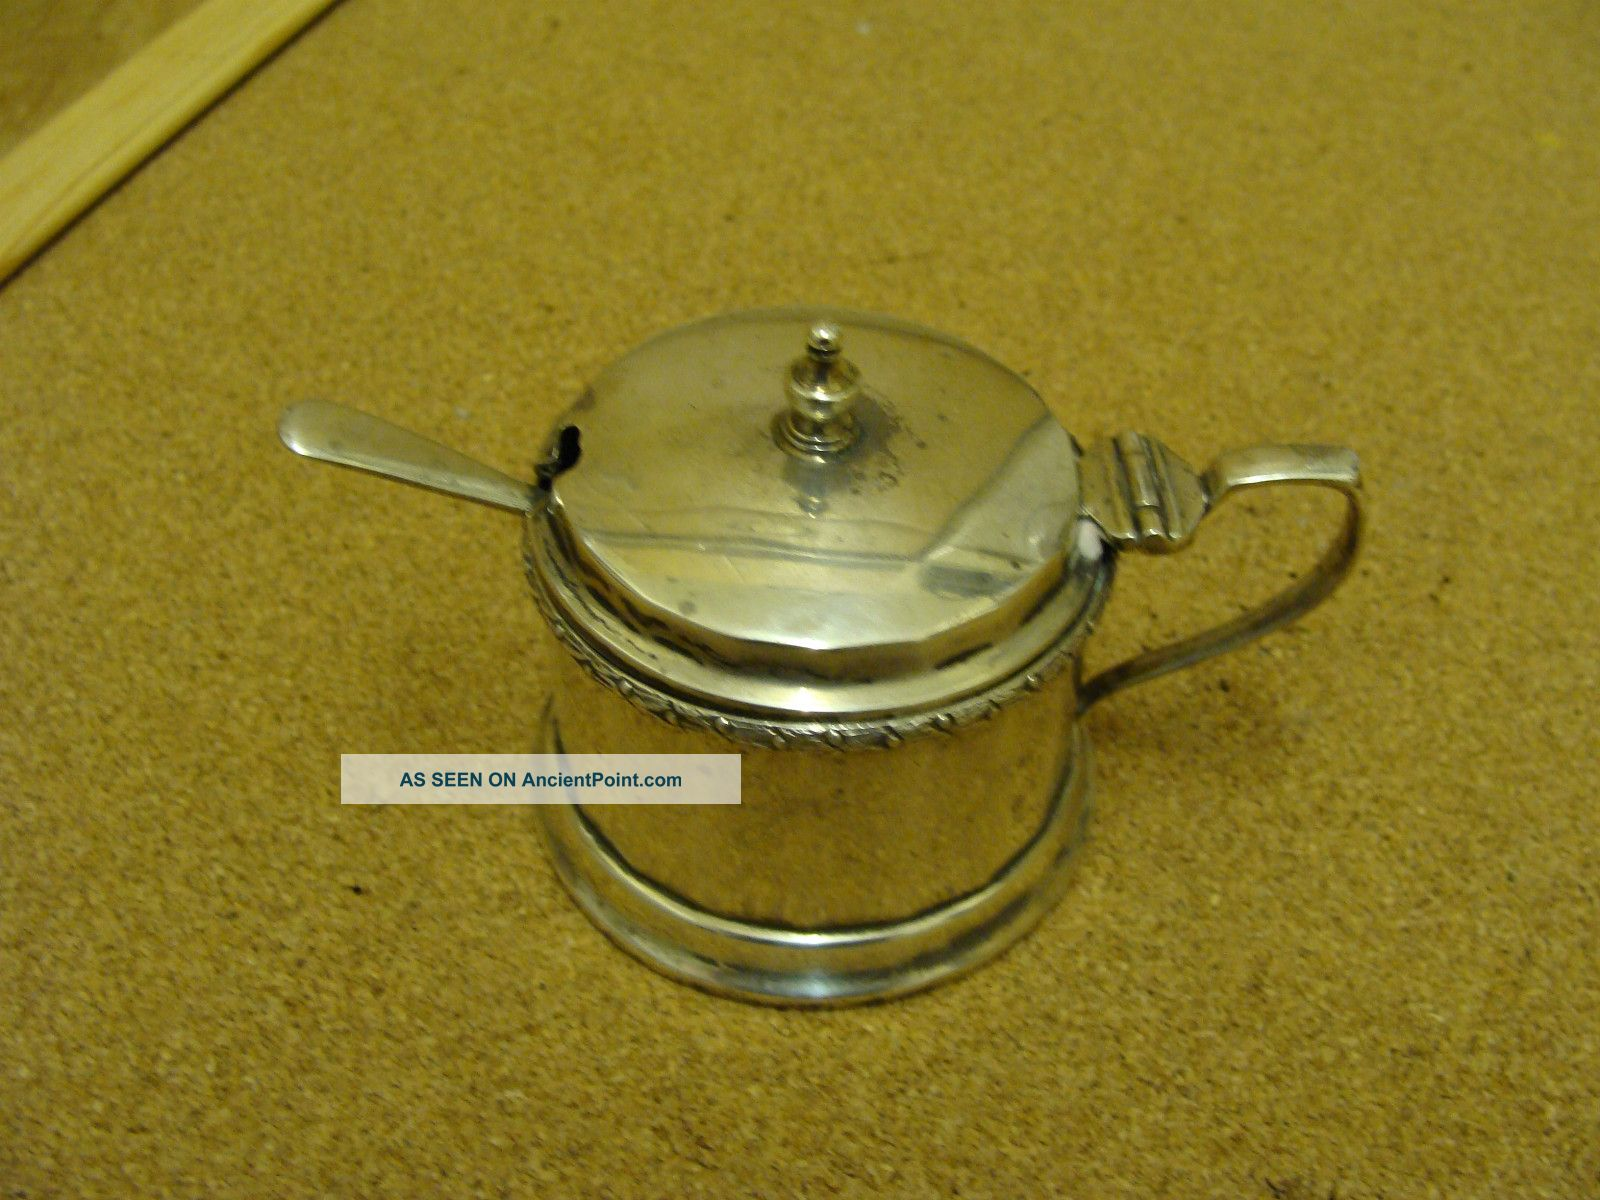 Antique Solid Silver Mustard Pot - Drum Shaped - With Blue Glass Liner & Spoon Mustard Pots photo